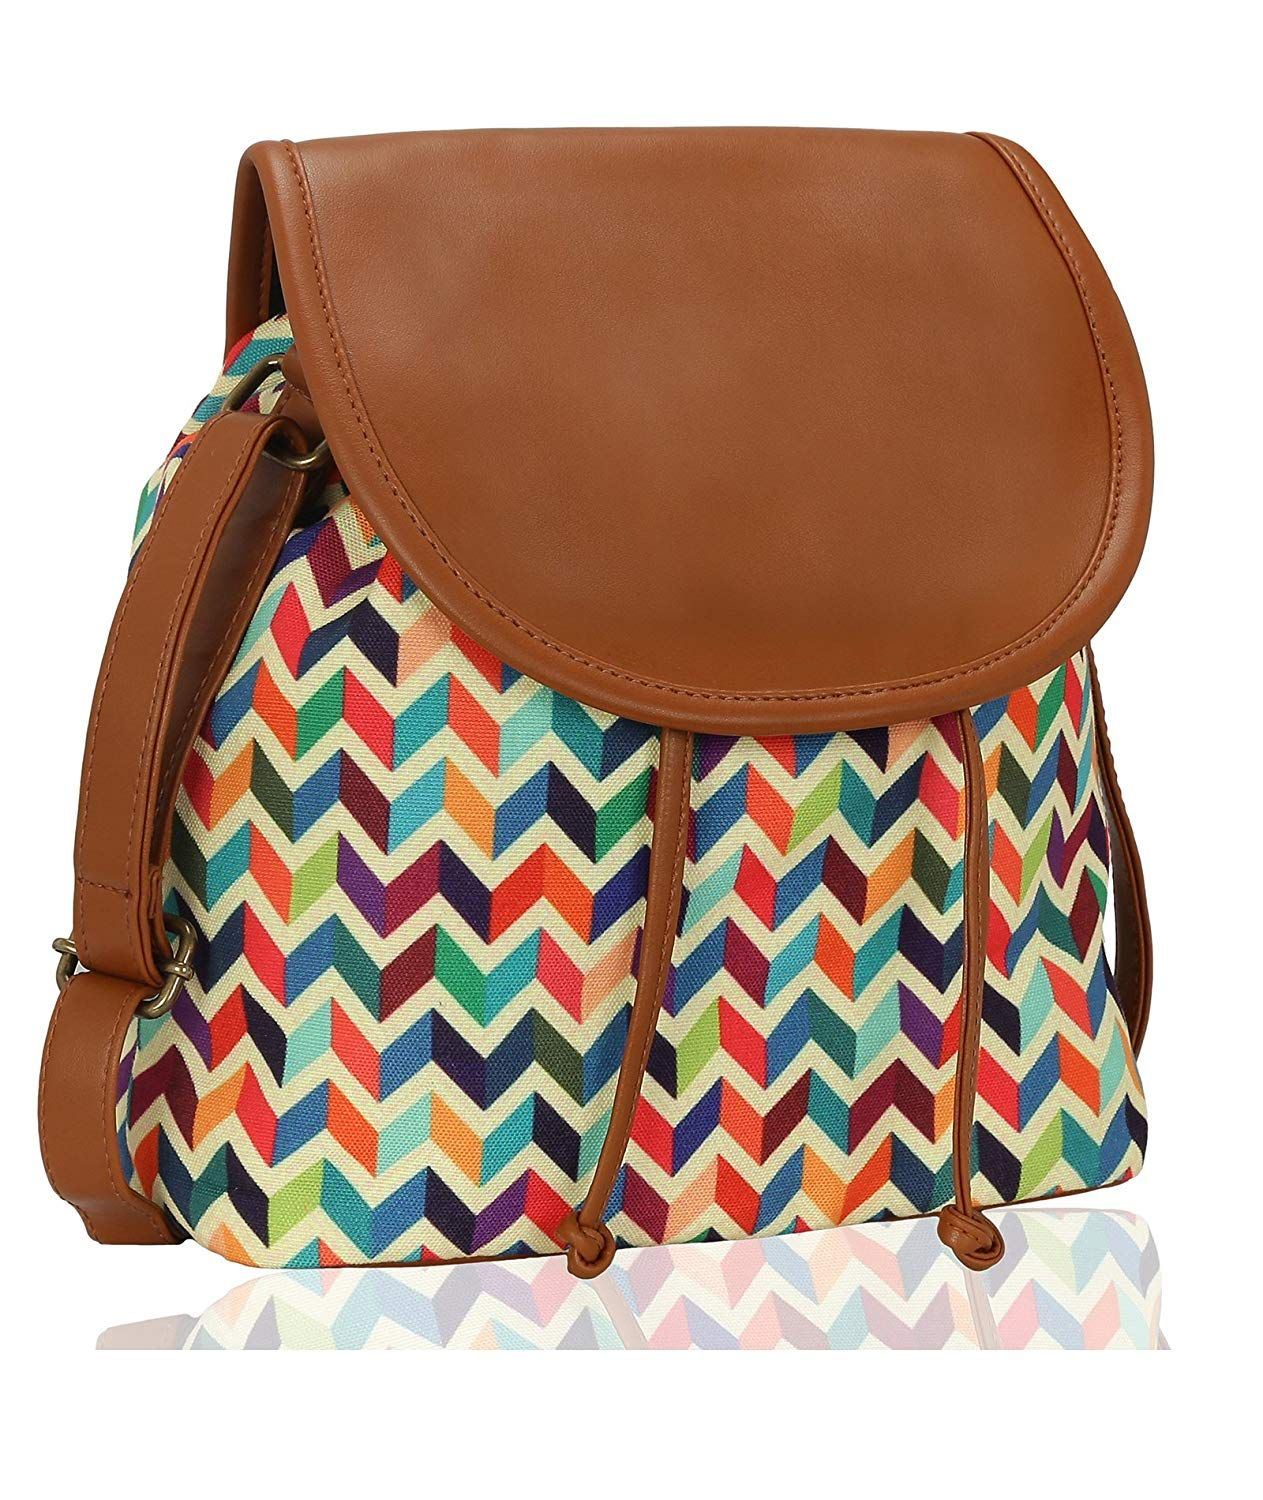 21495cfcf PRICE   Rs. 619 Kleio Beautiful Stylish Sling Bag For Girls   Women ...